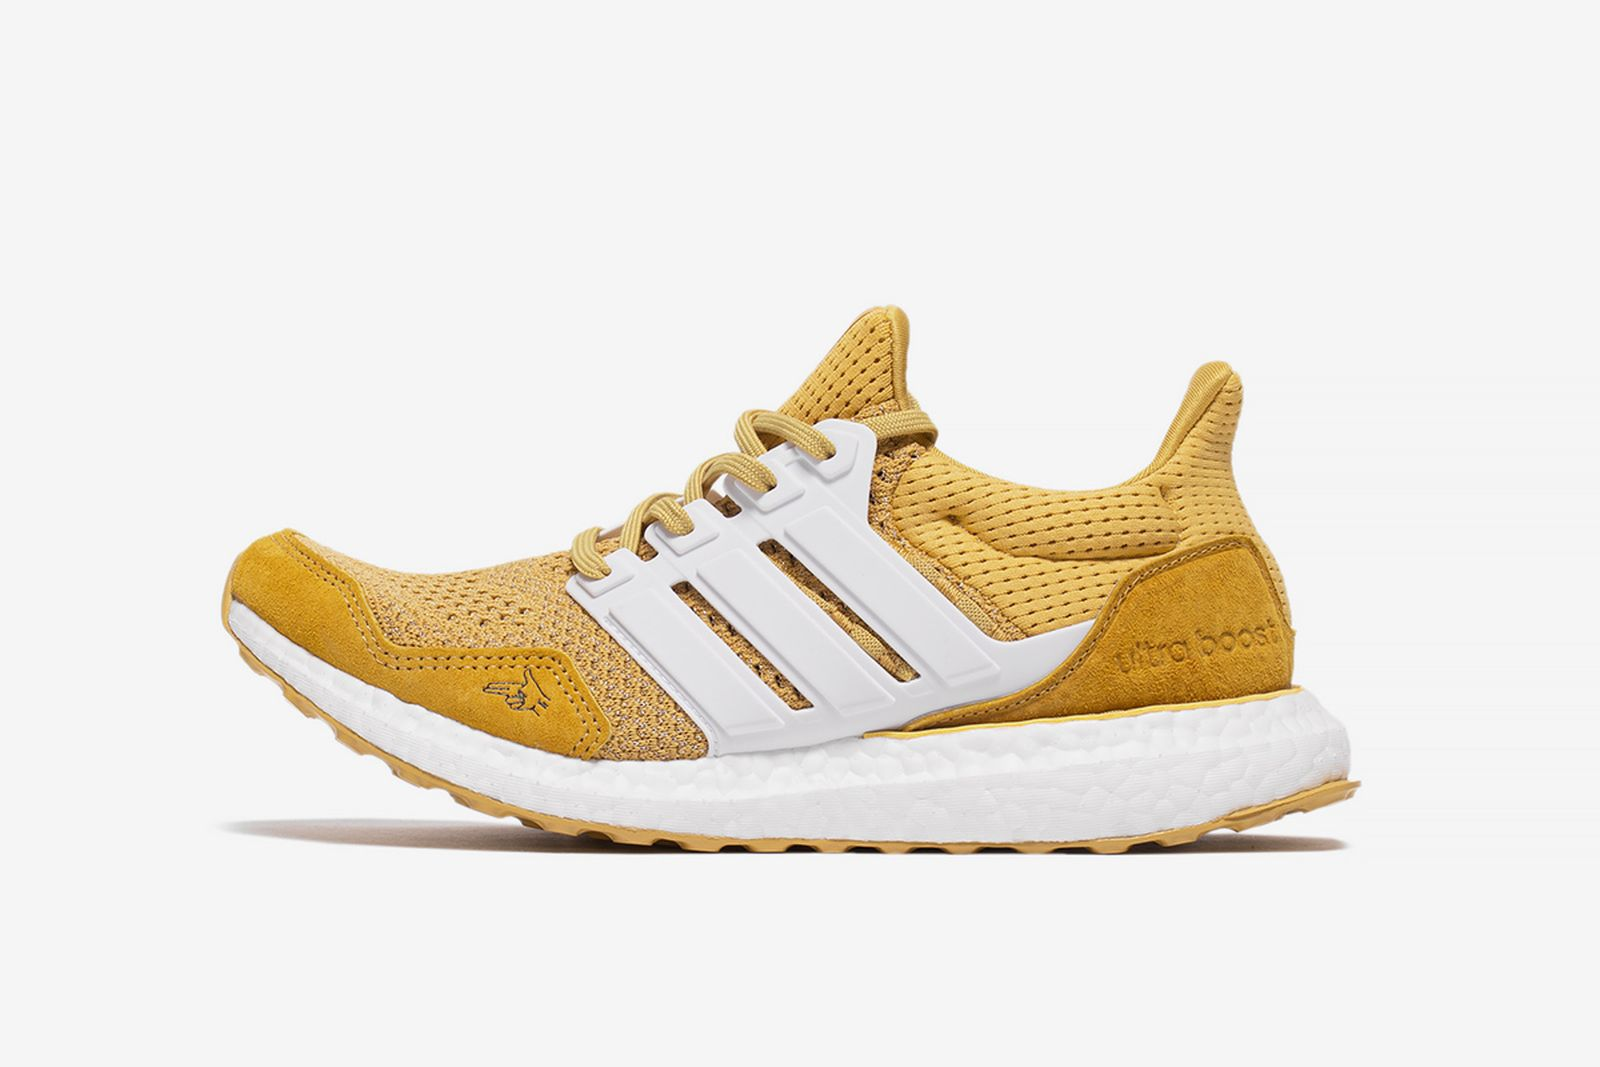 extra-butter-adidas-ultraboost-gold-jacket-release-date-price-1-01